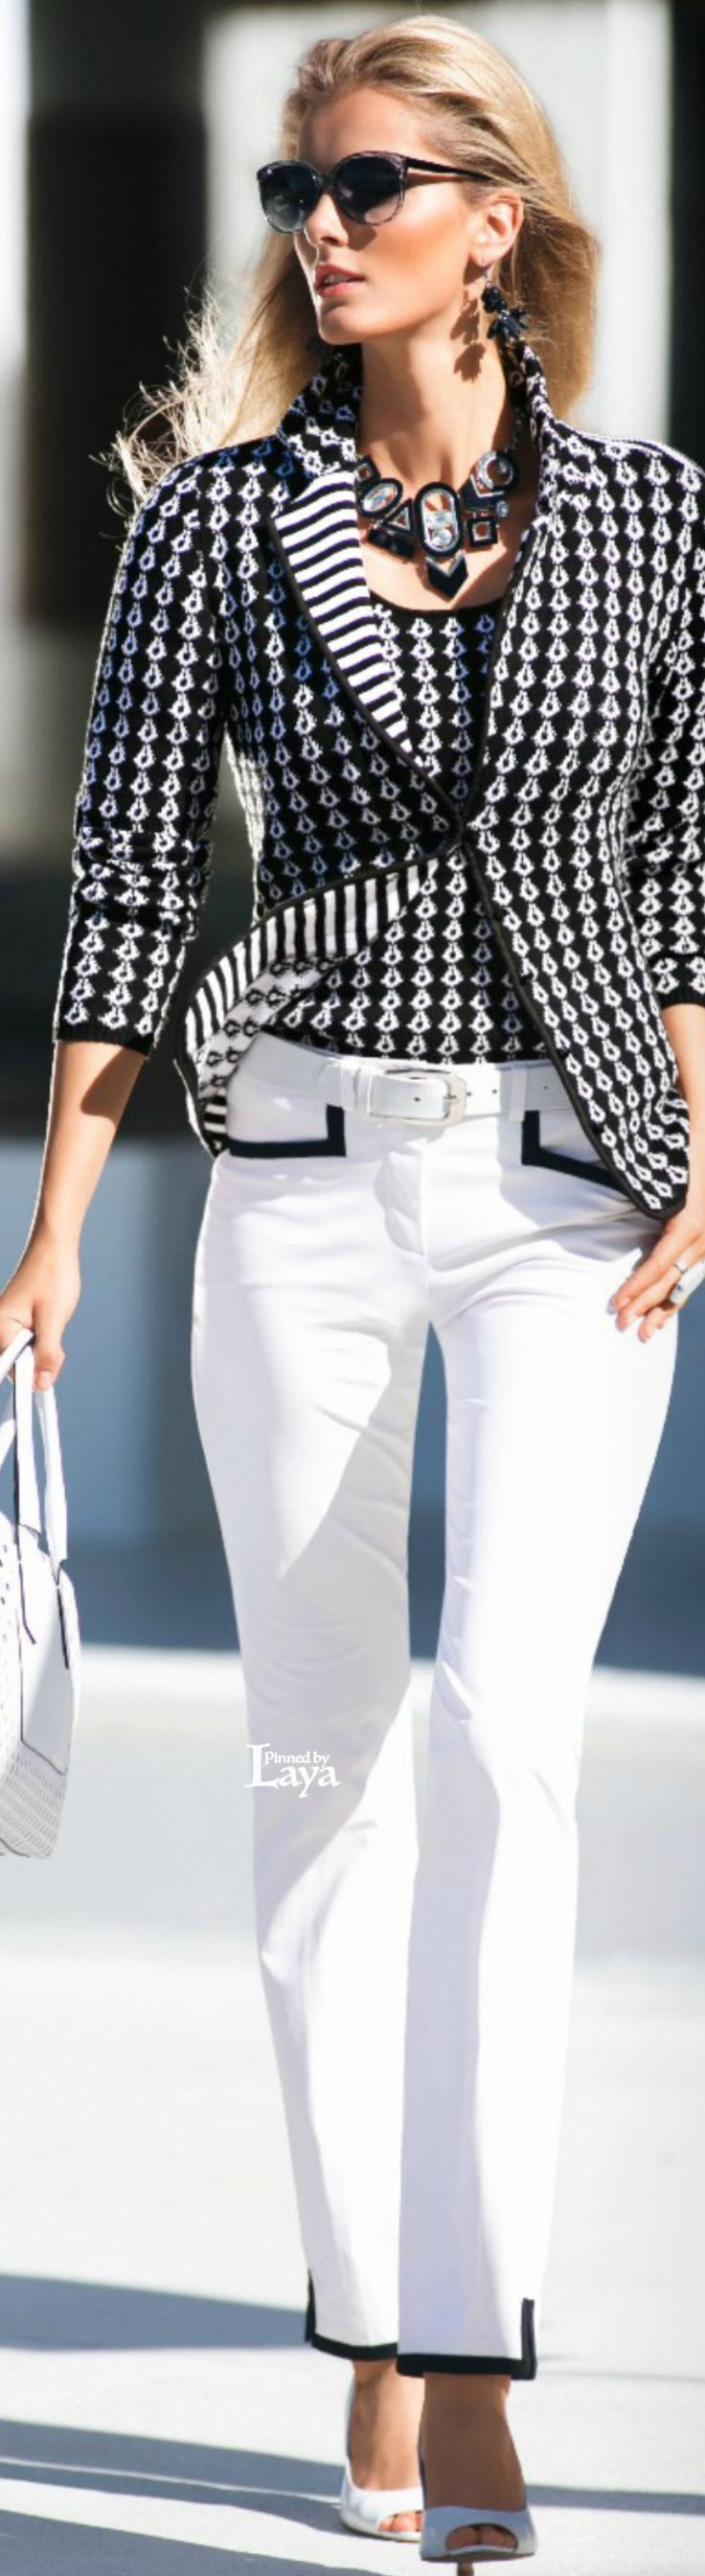 black blazer jacket, white jeans. Classic street #women #fashion outfit #clothing style apparel @roressclothes closet ideas